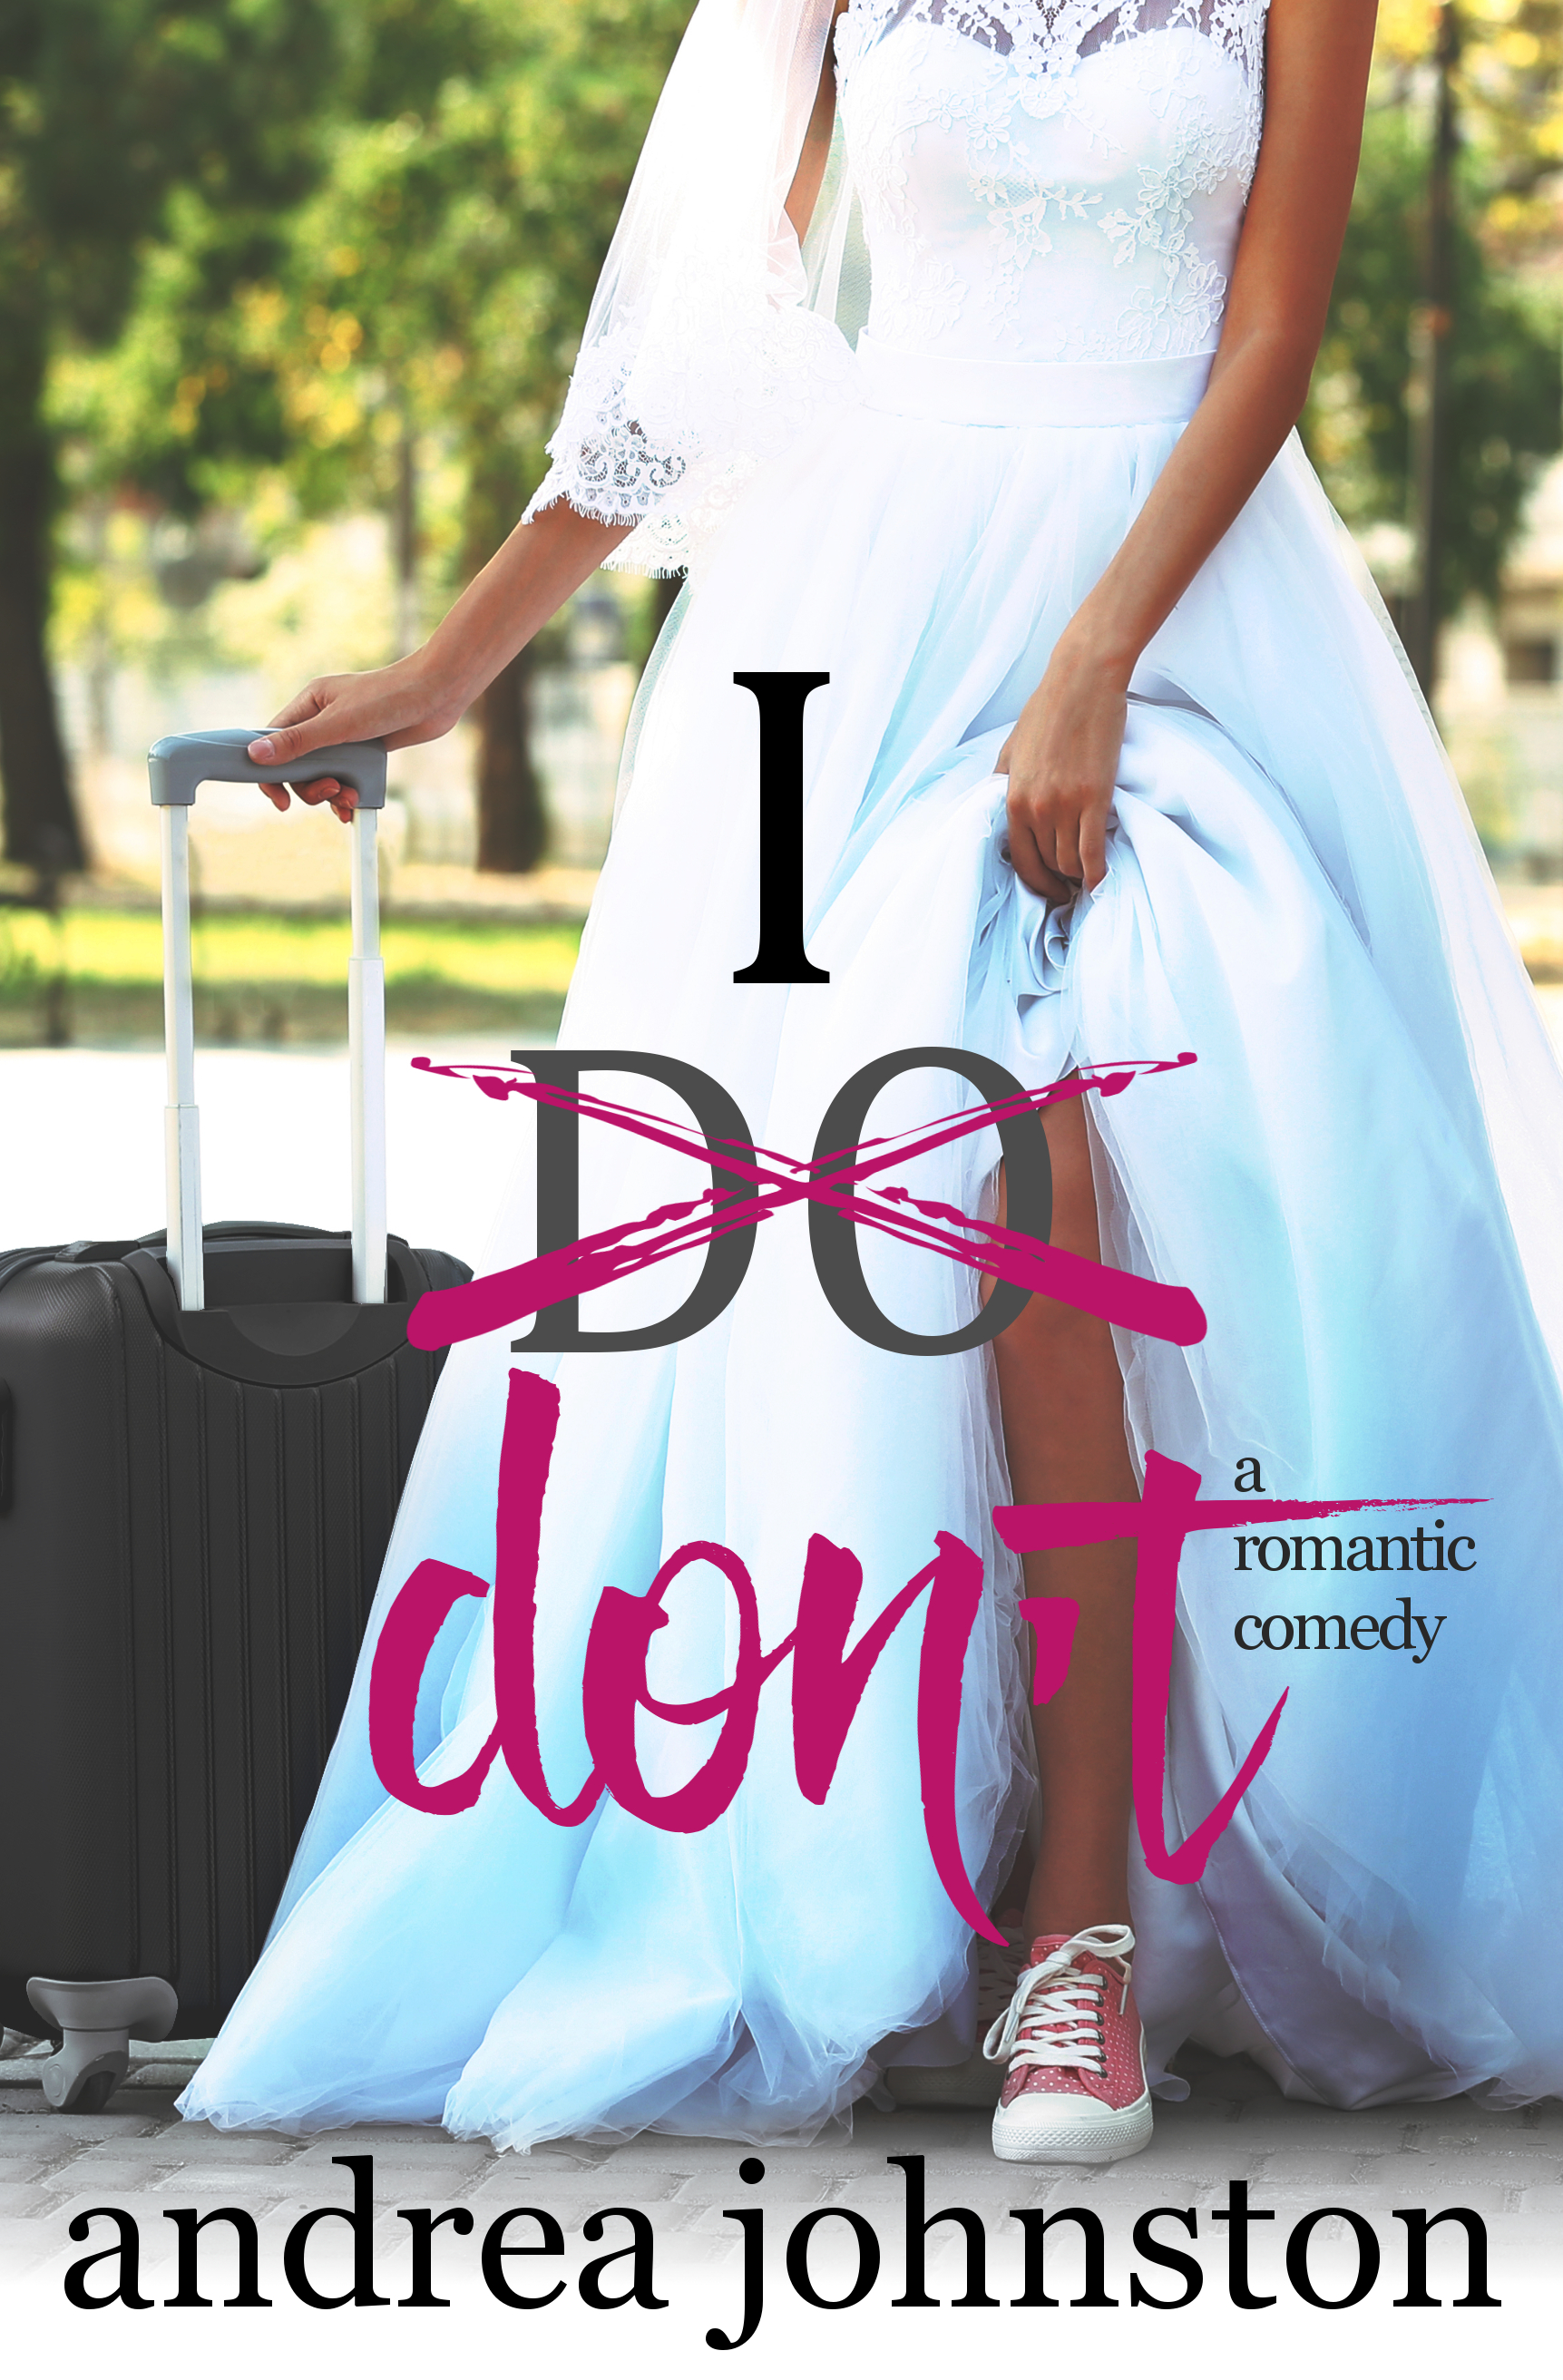 I Don't by Andrea Johnson [Review]